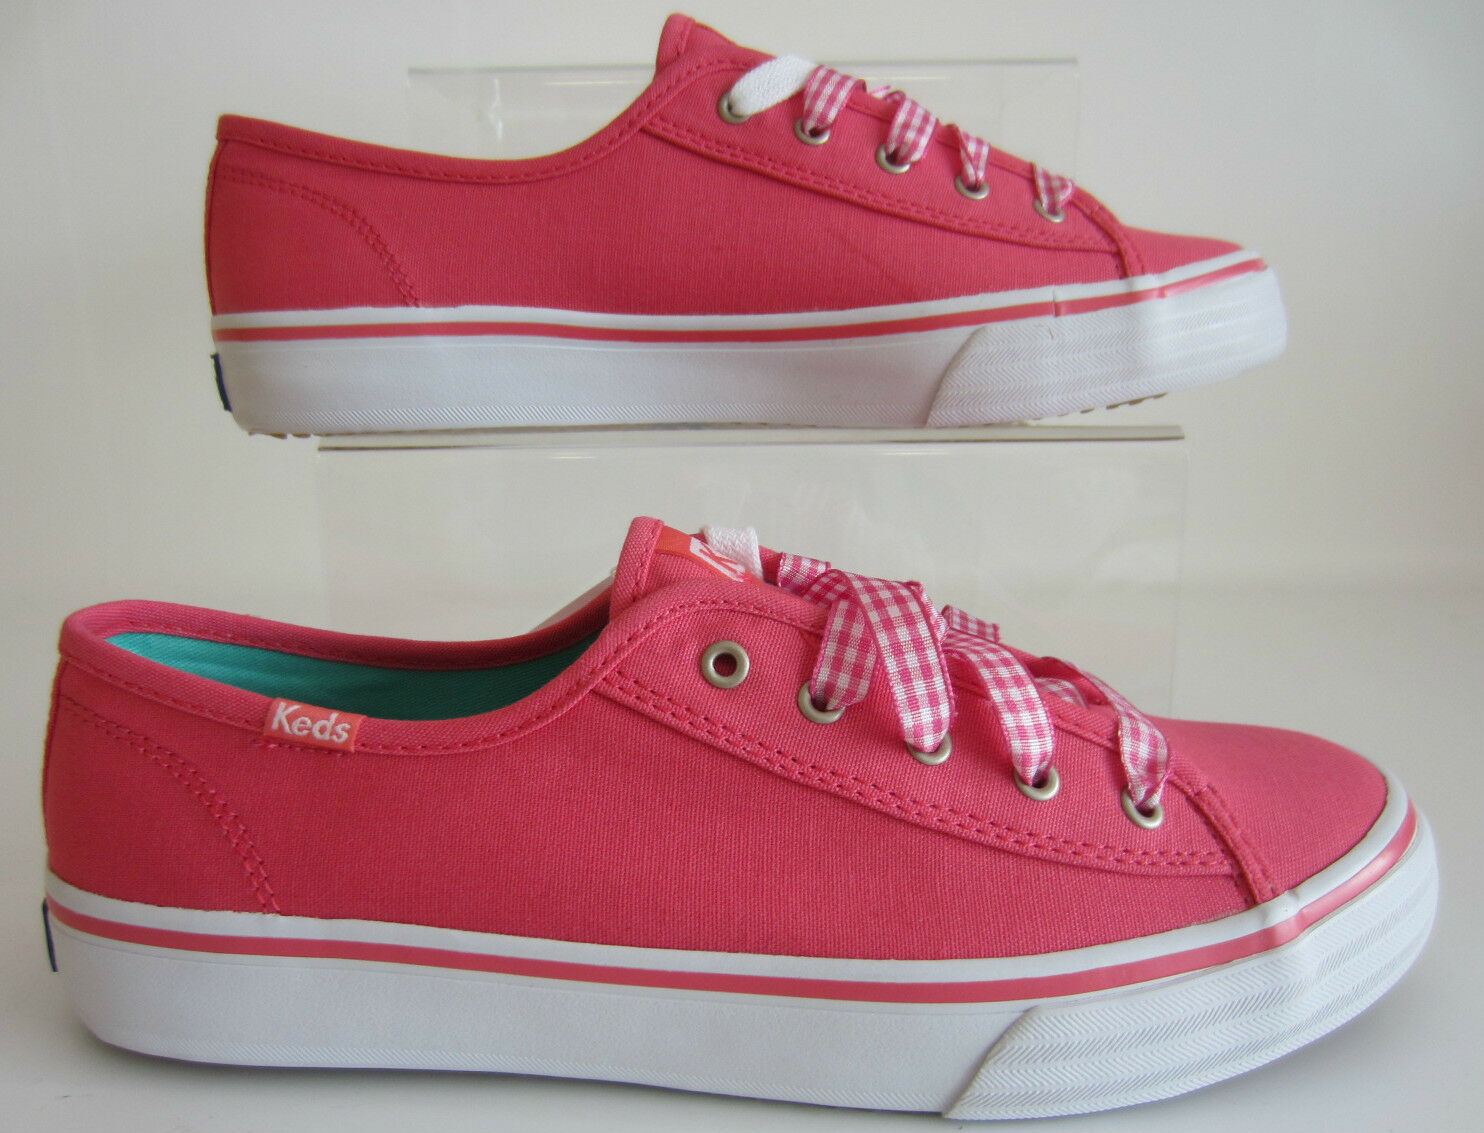 Keds Ladies Double Up Coral WF49941 Ladies Keds Canvas Shoe to 6.5  (R41B) 75b5f8